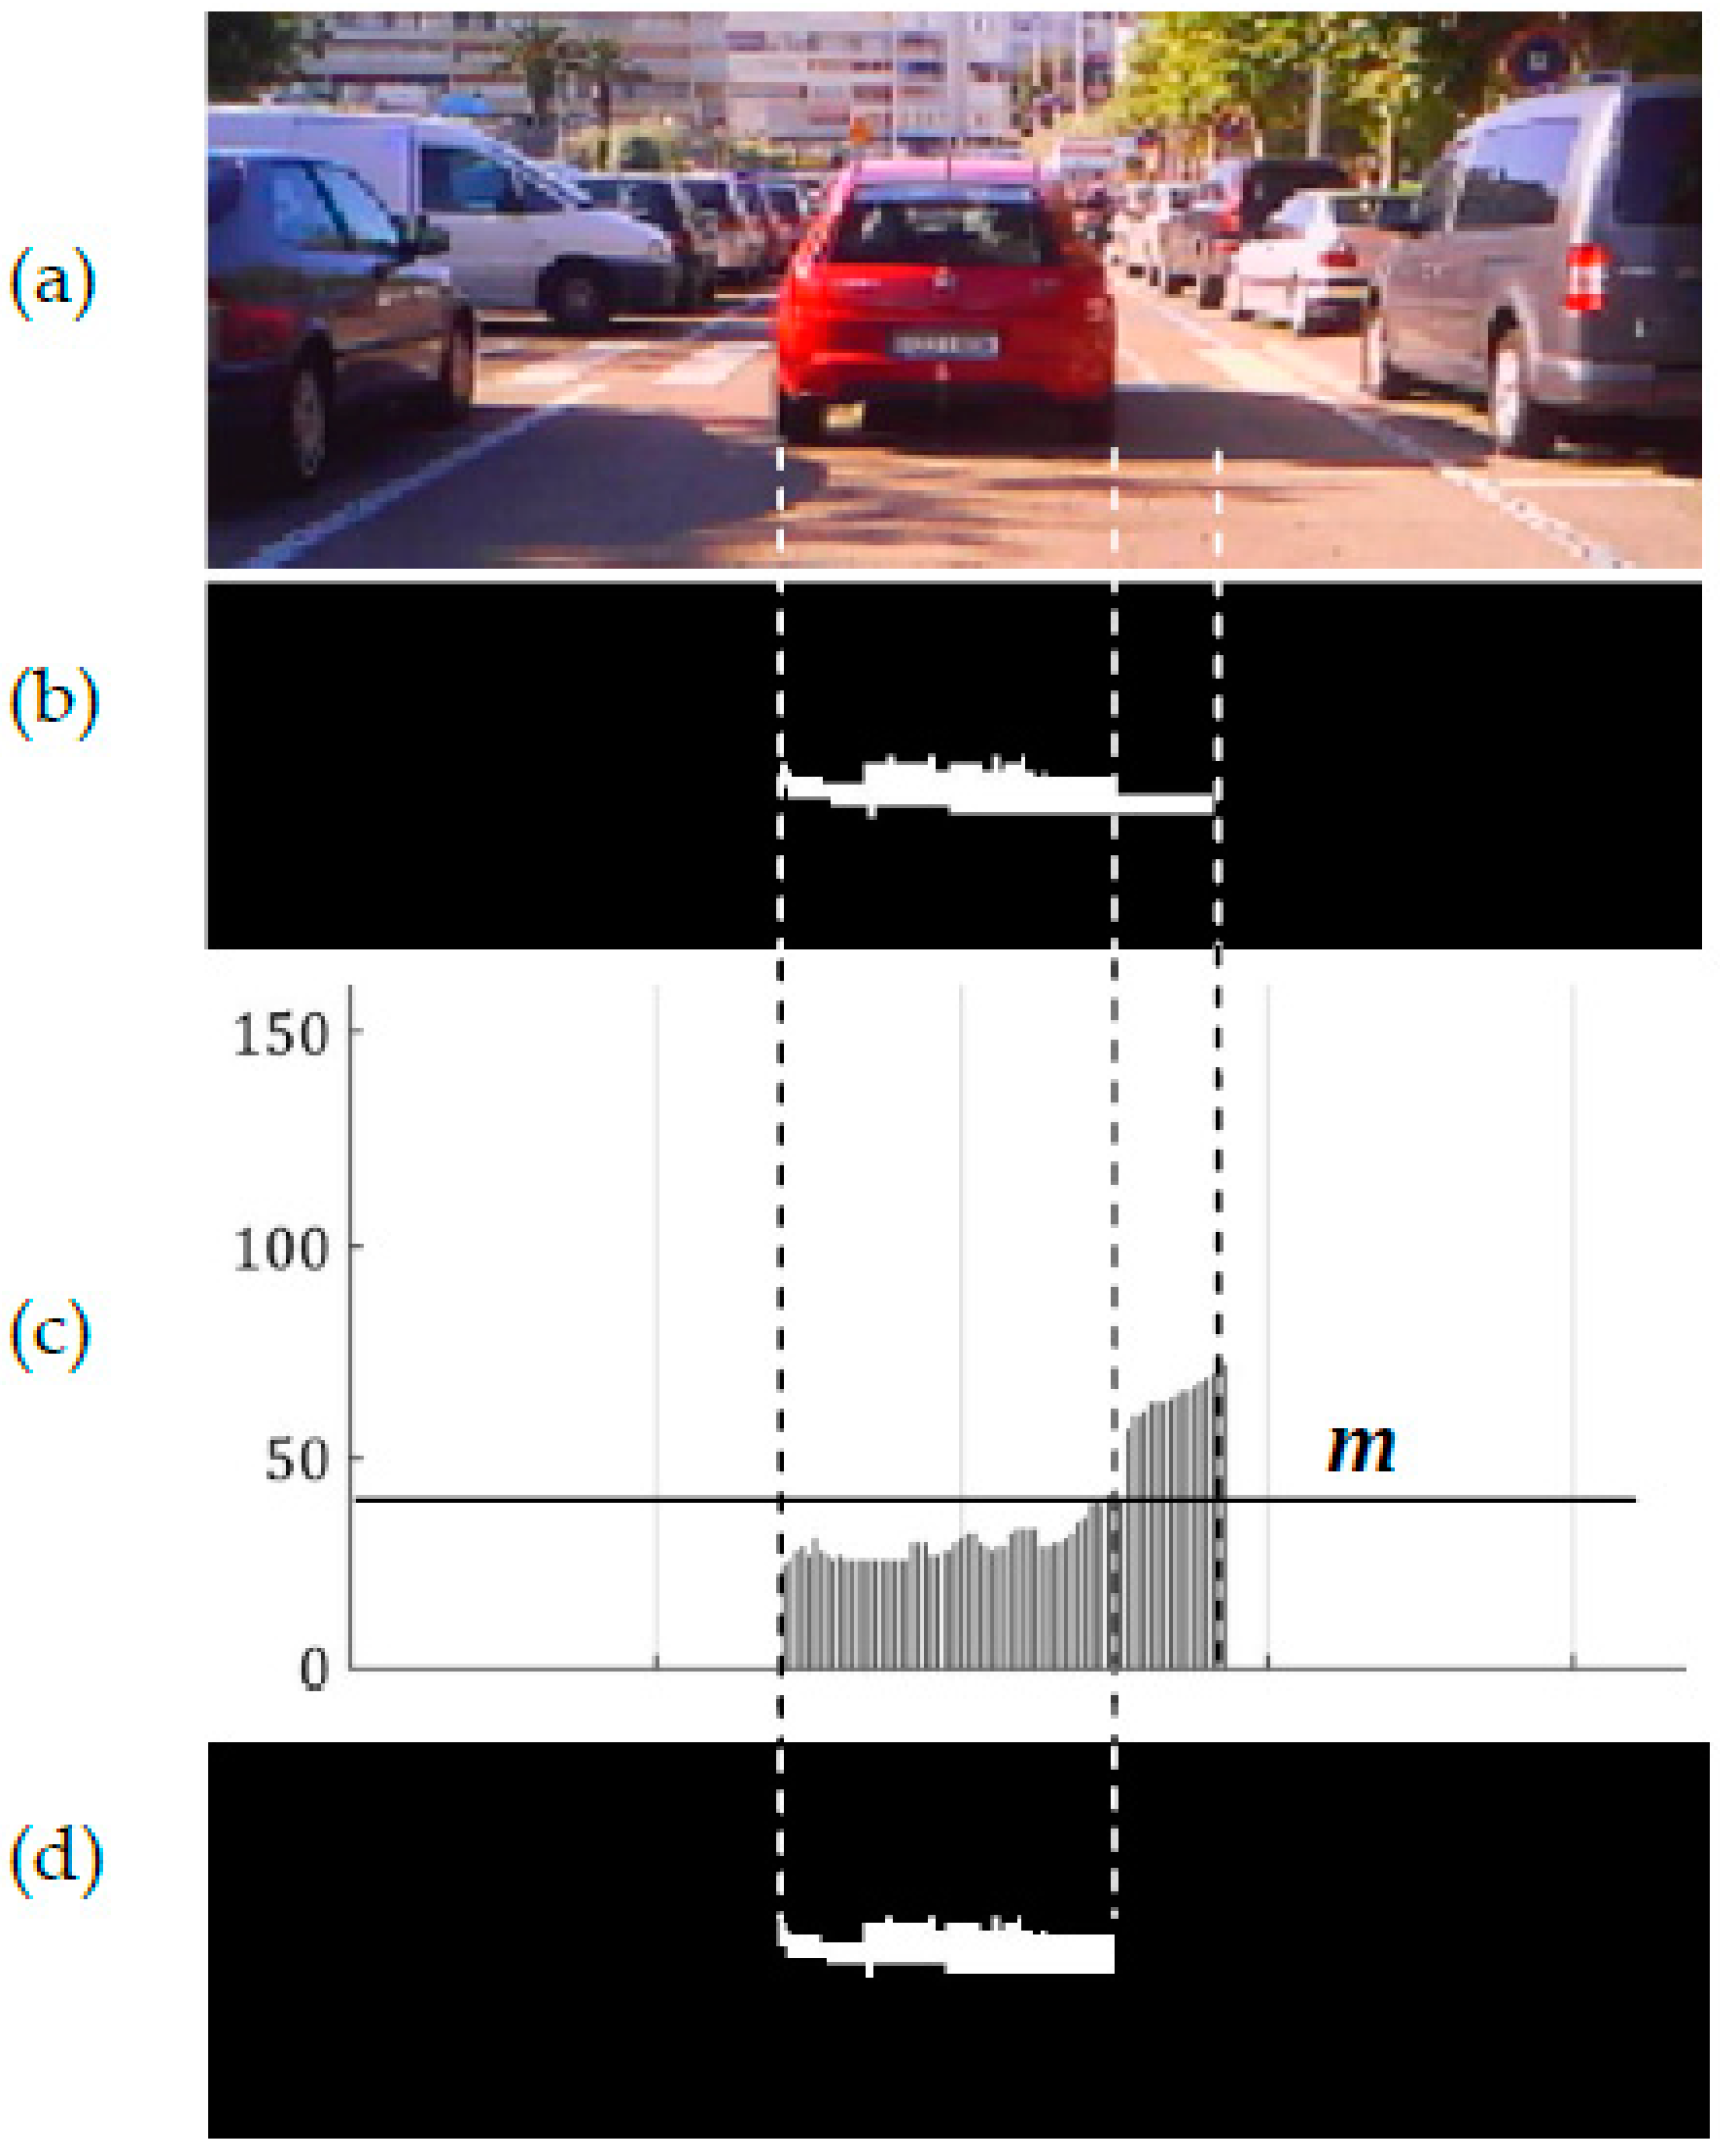 Thesis on vehicle detection